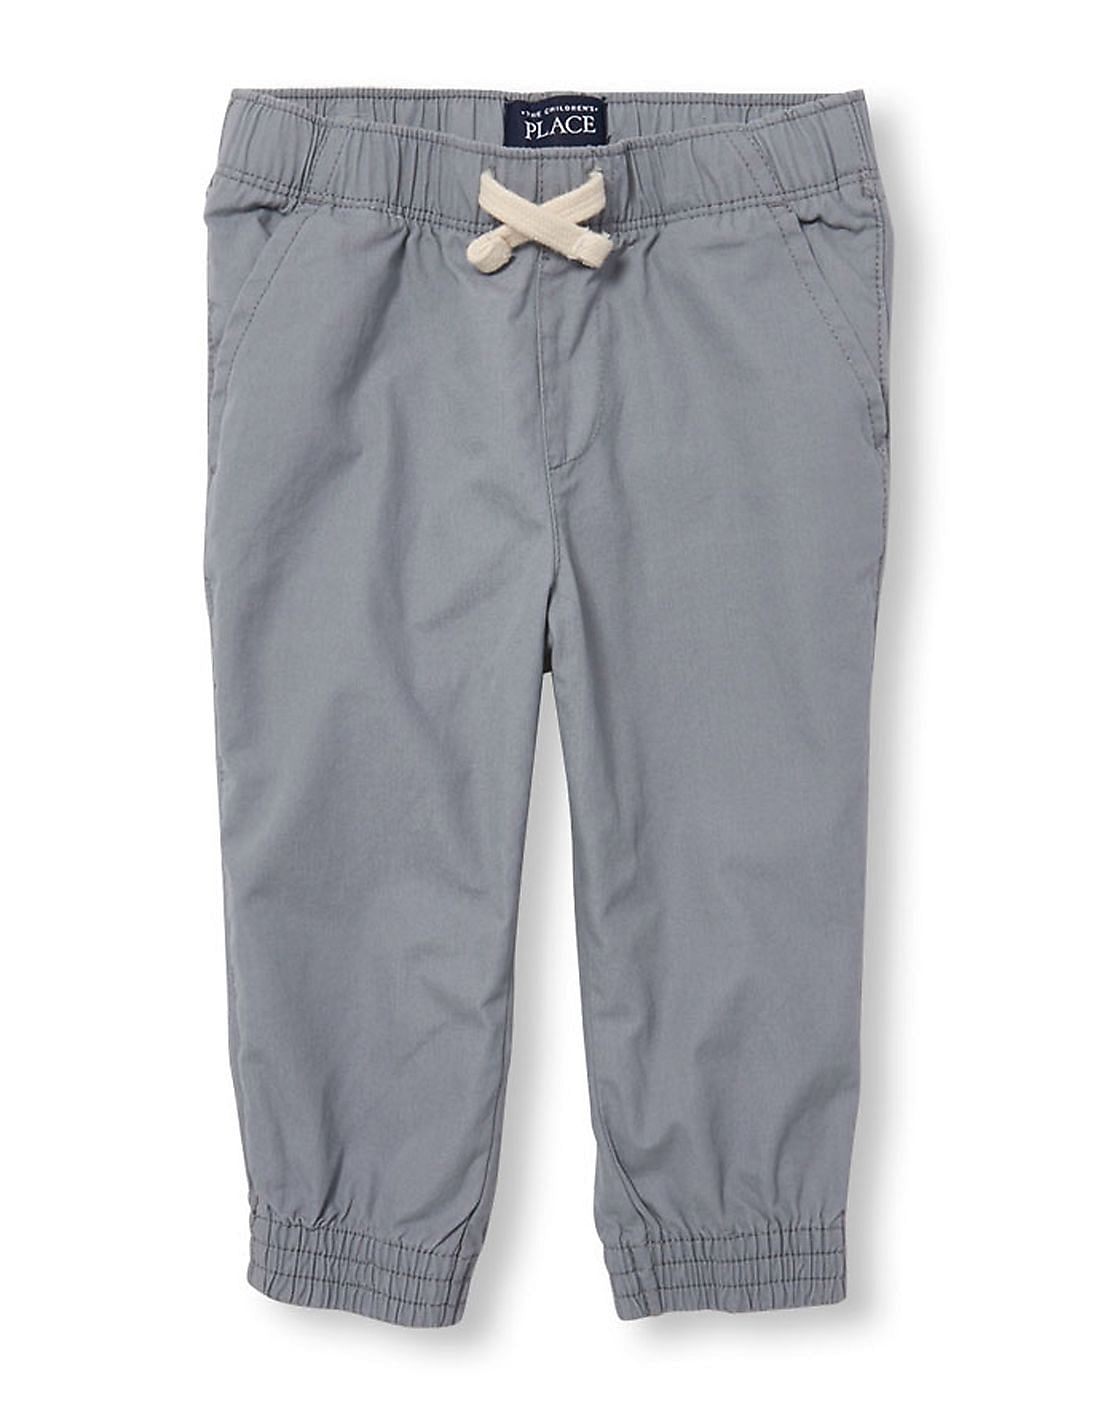 The Childrens Place Boys Solid Jogger Shorts